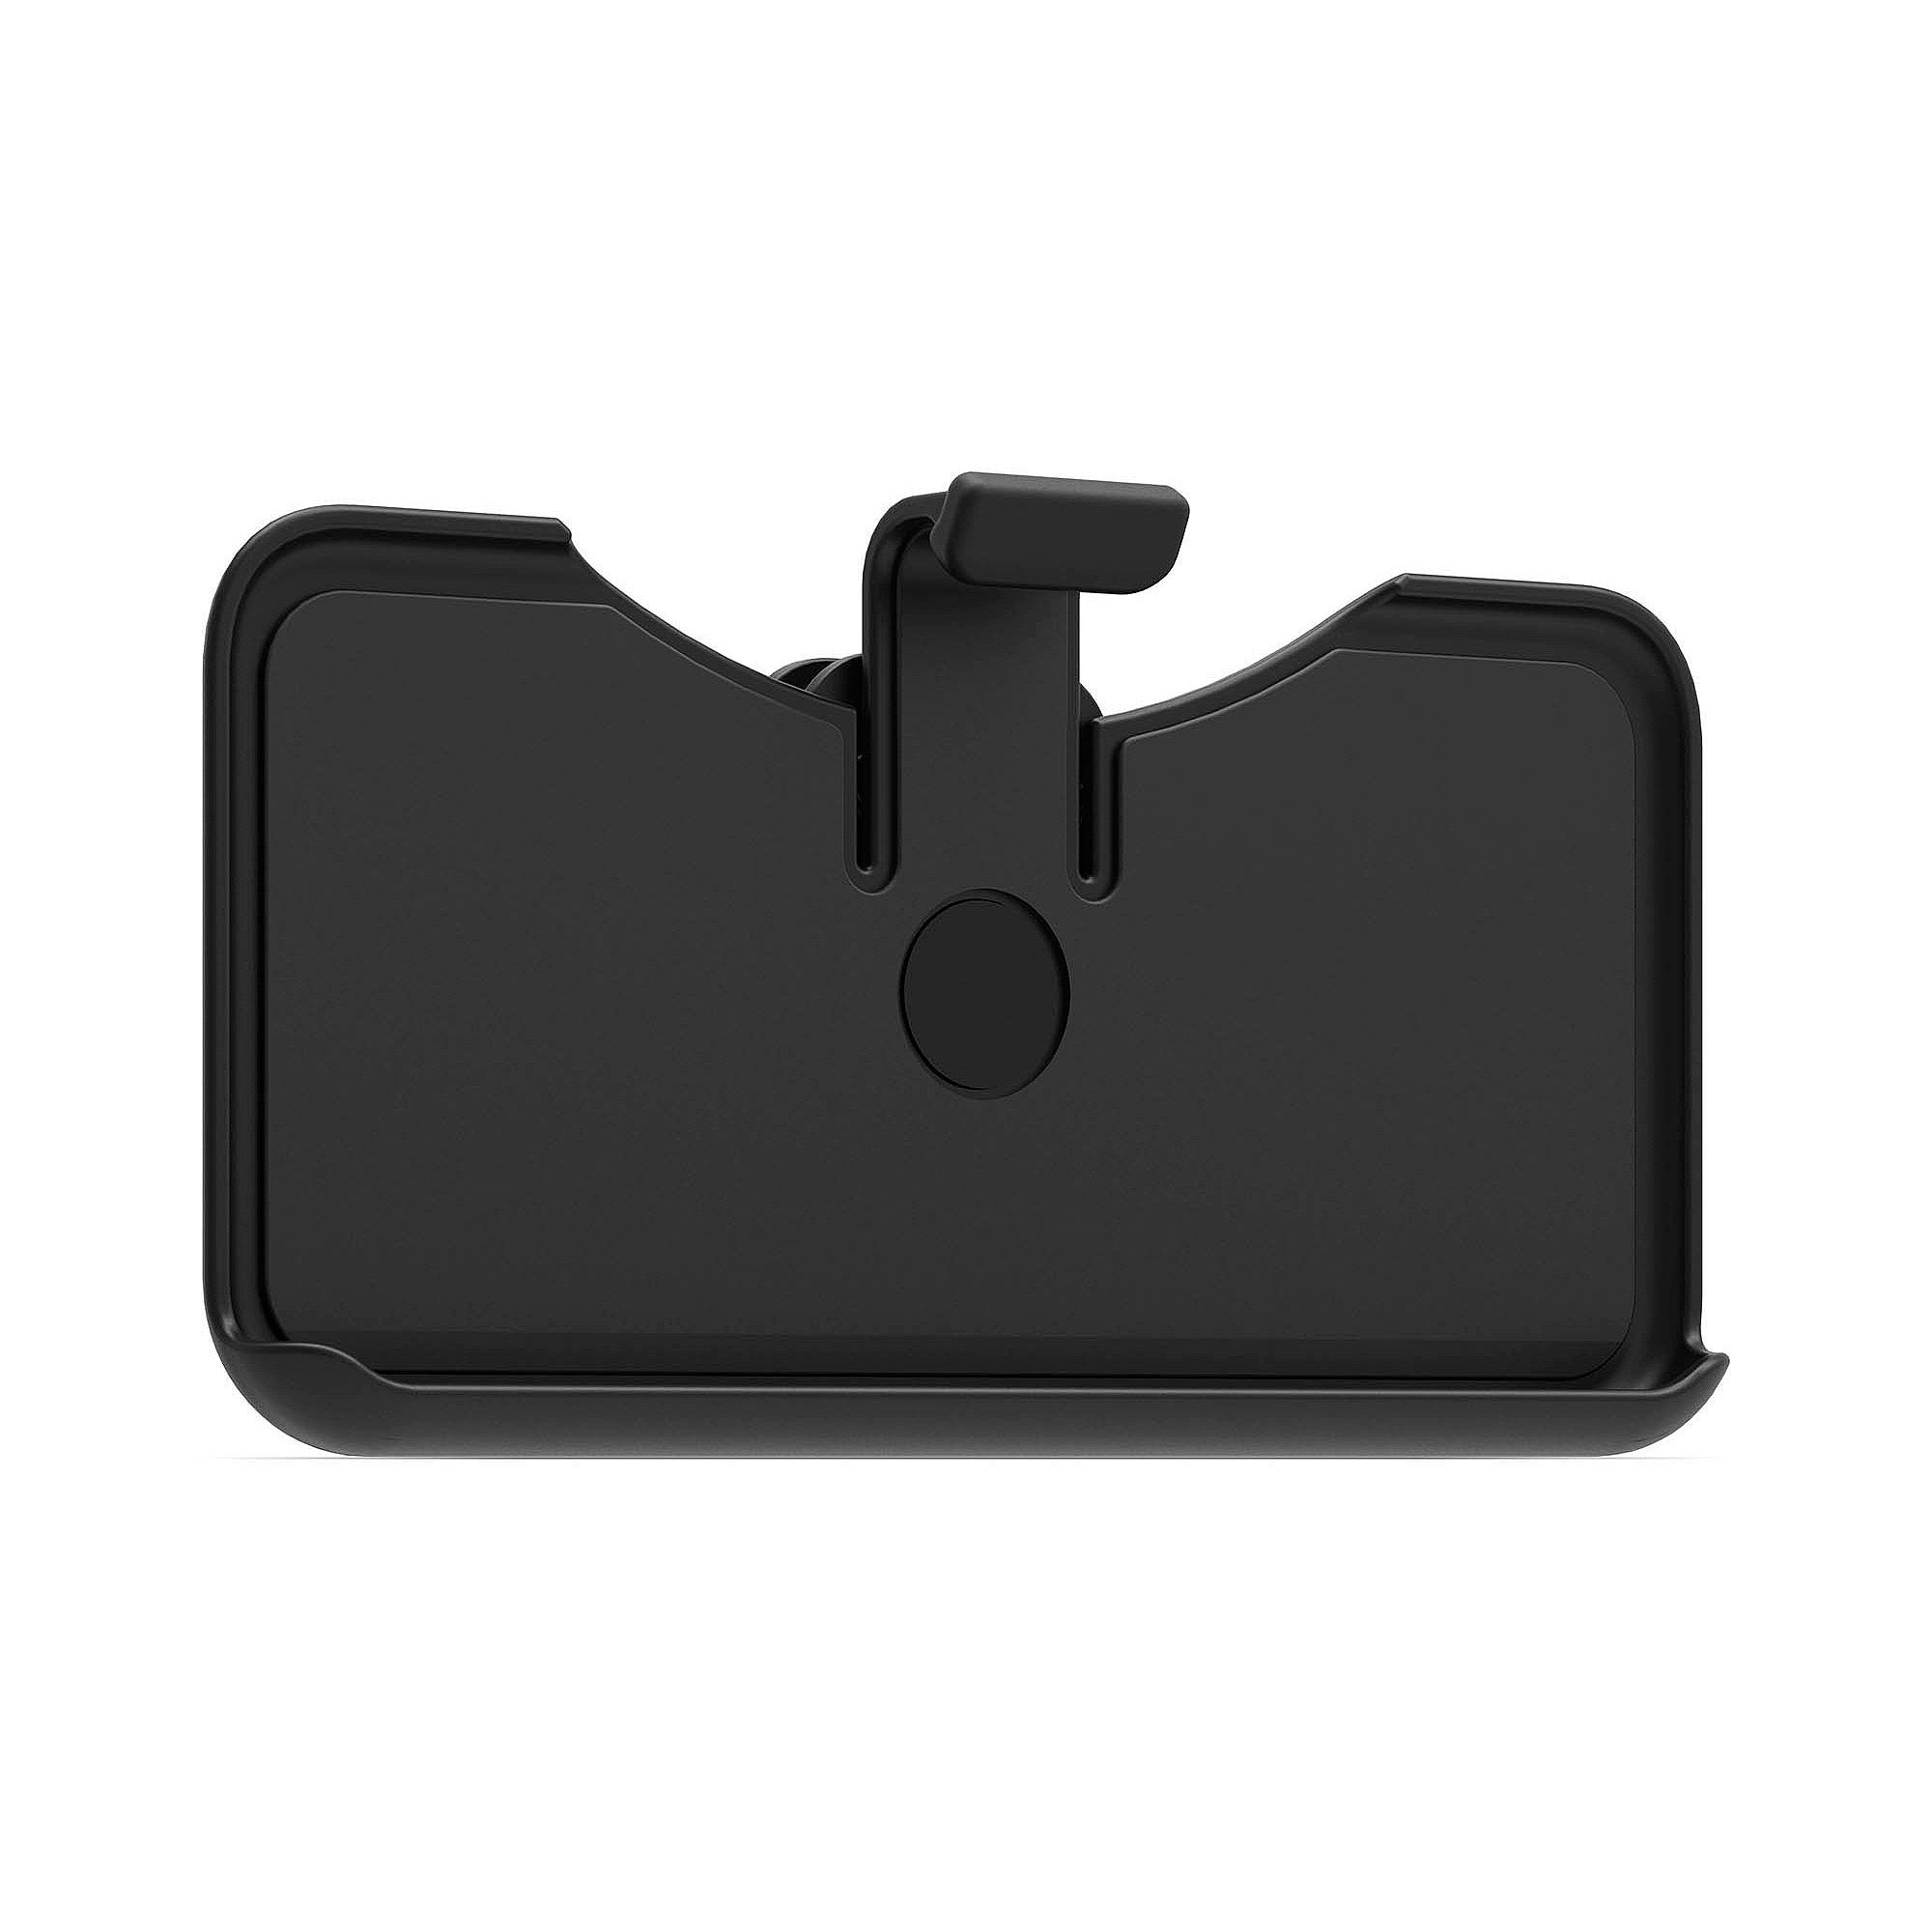 new concept cba0a 99a1d mophie Belt Clip for mophie Juice Pack for iPhone 6 Plus at ...